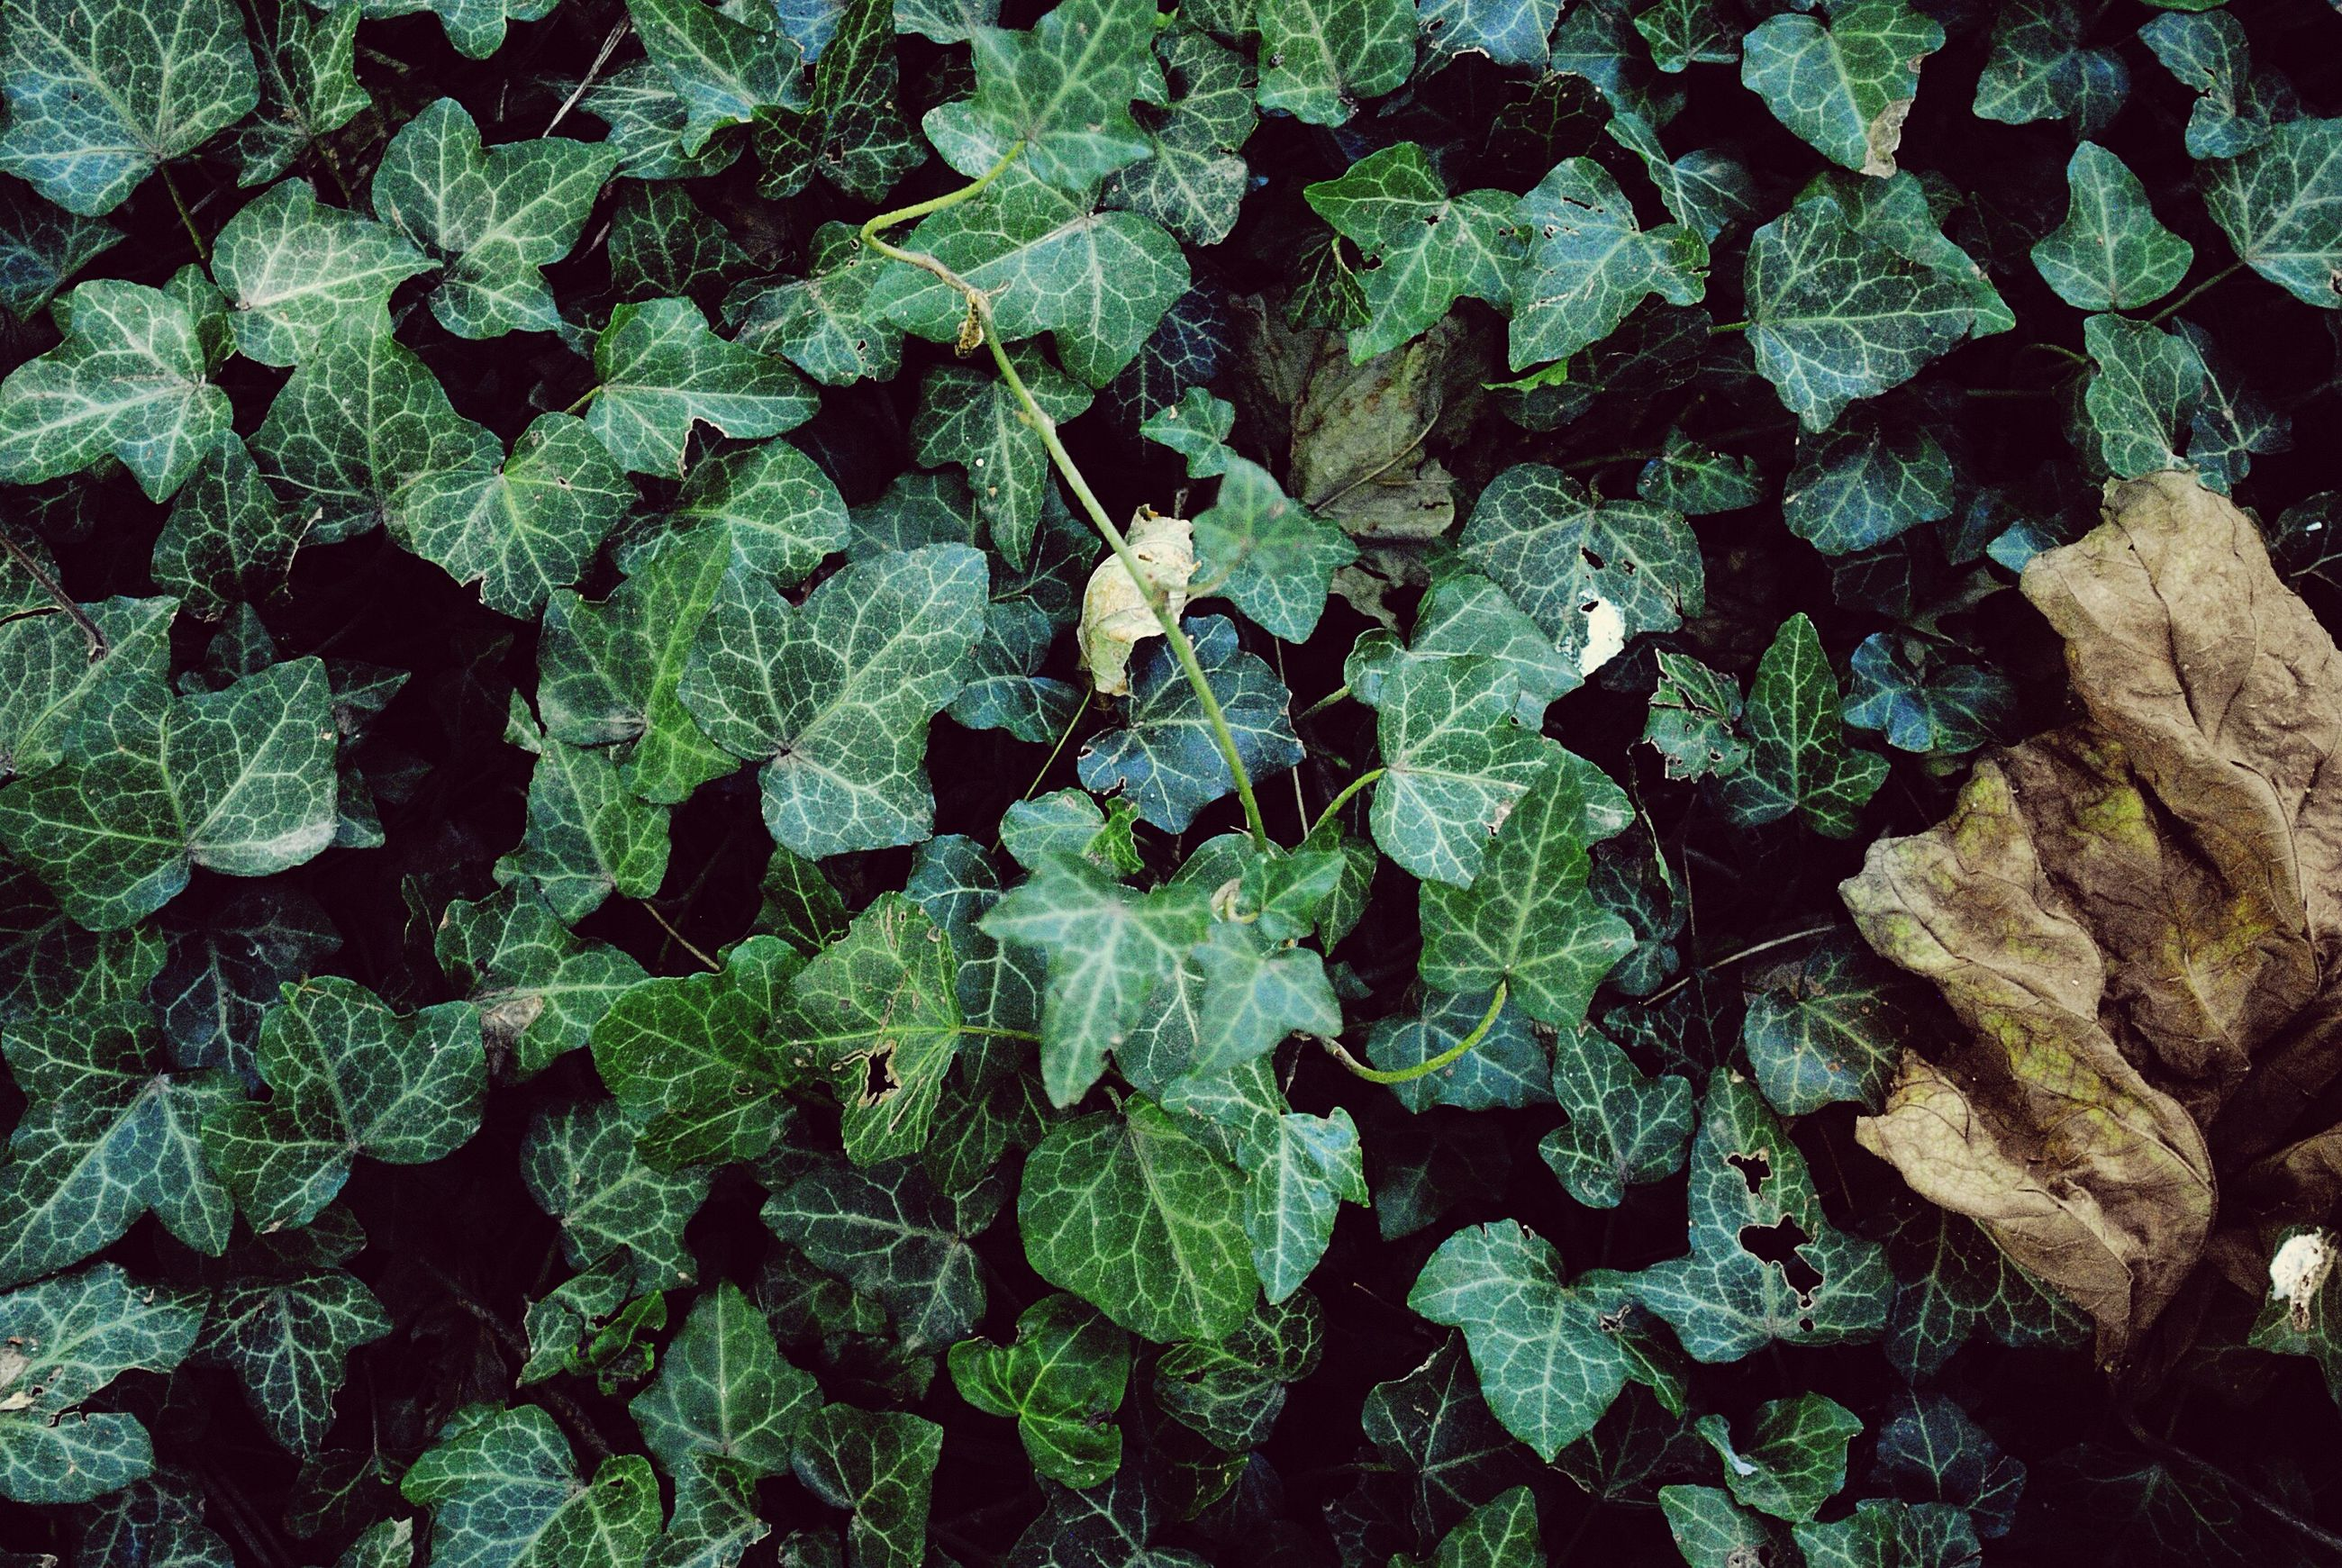 green color, backgrounds, full frame, leaf, growth, plant, no people, nature, close-up, indoors, ivy, freshness, day